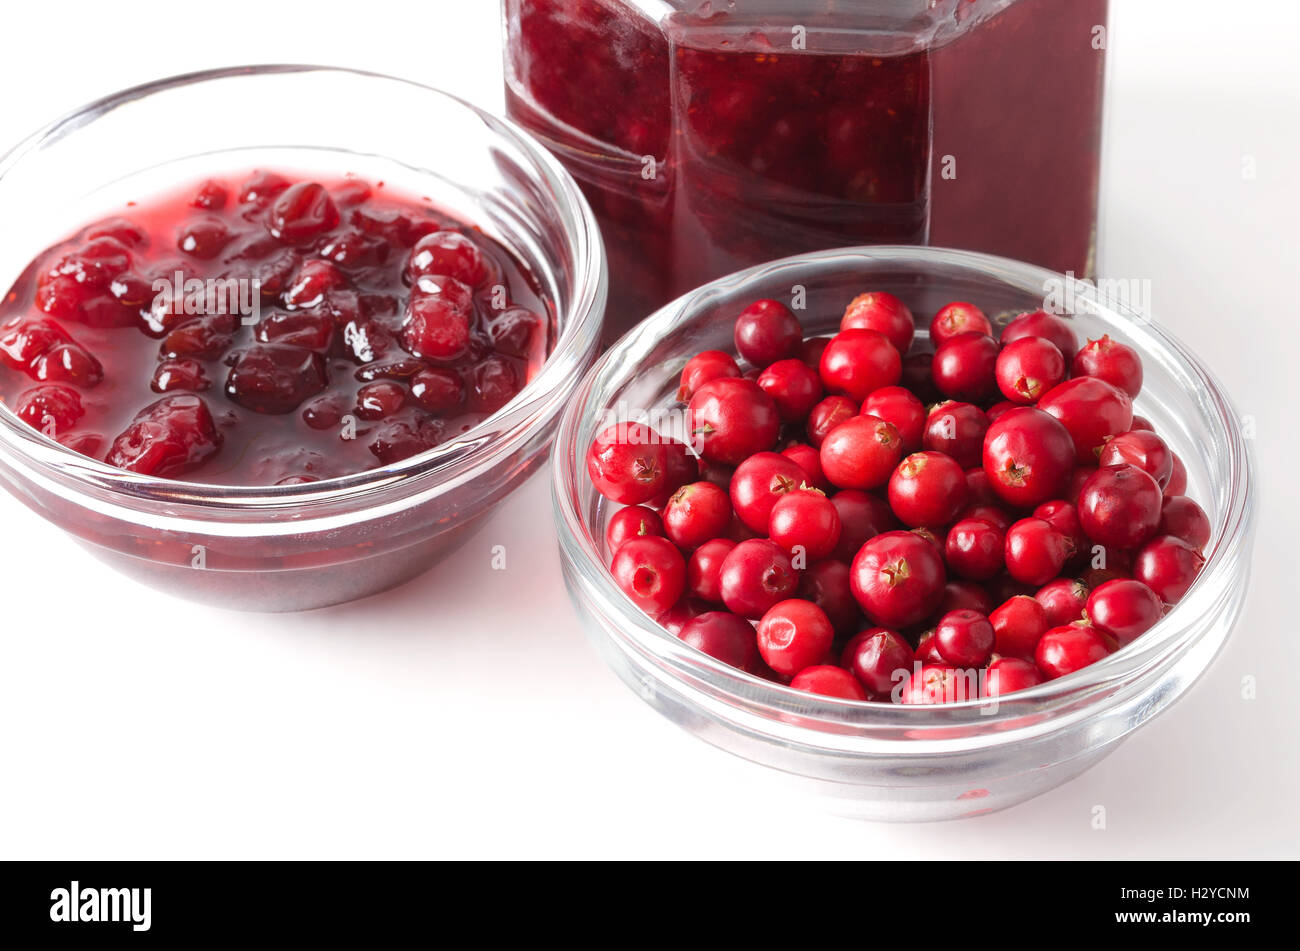 Lingonberries and lingonberry jam in glass bowls over white. Fresh red fruits of Vaccinium vitis-idaea, also mountain - Stock Image